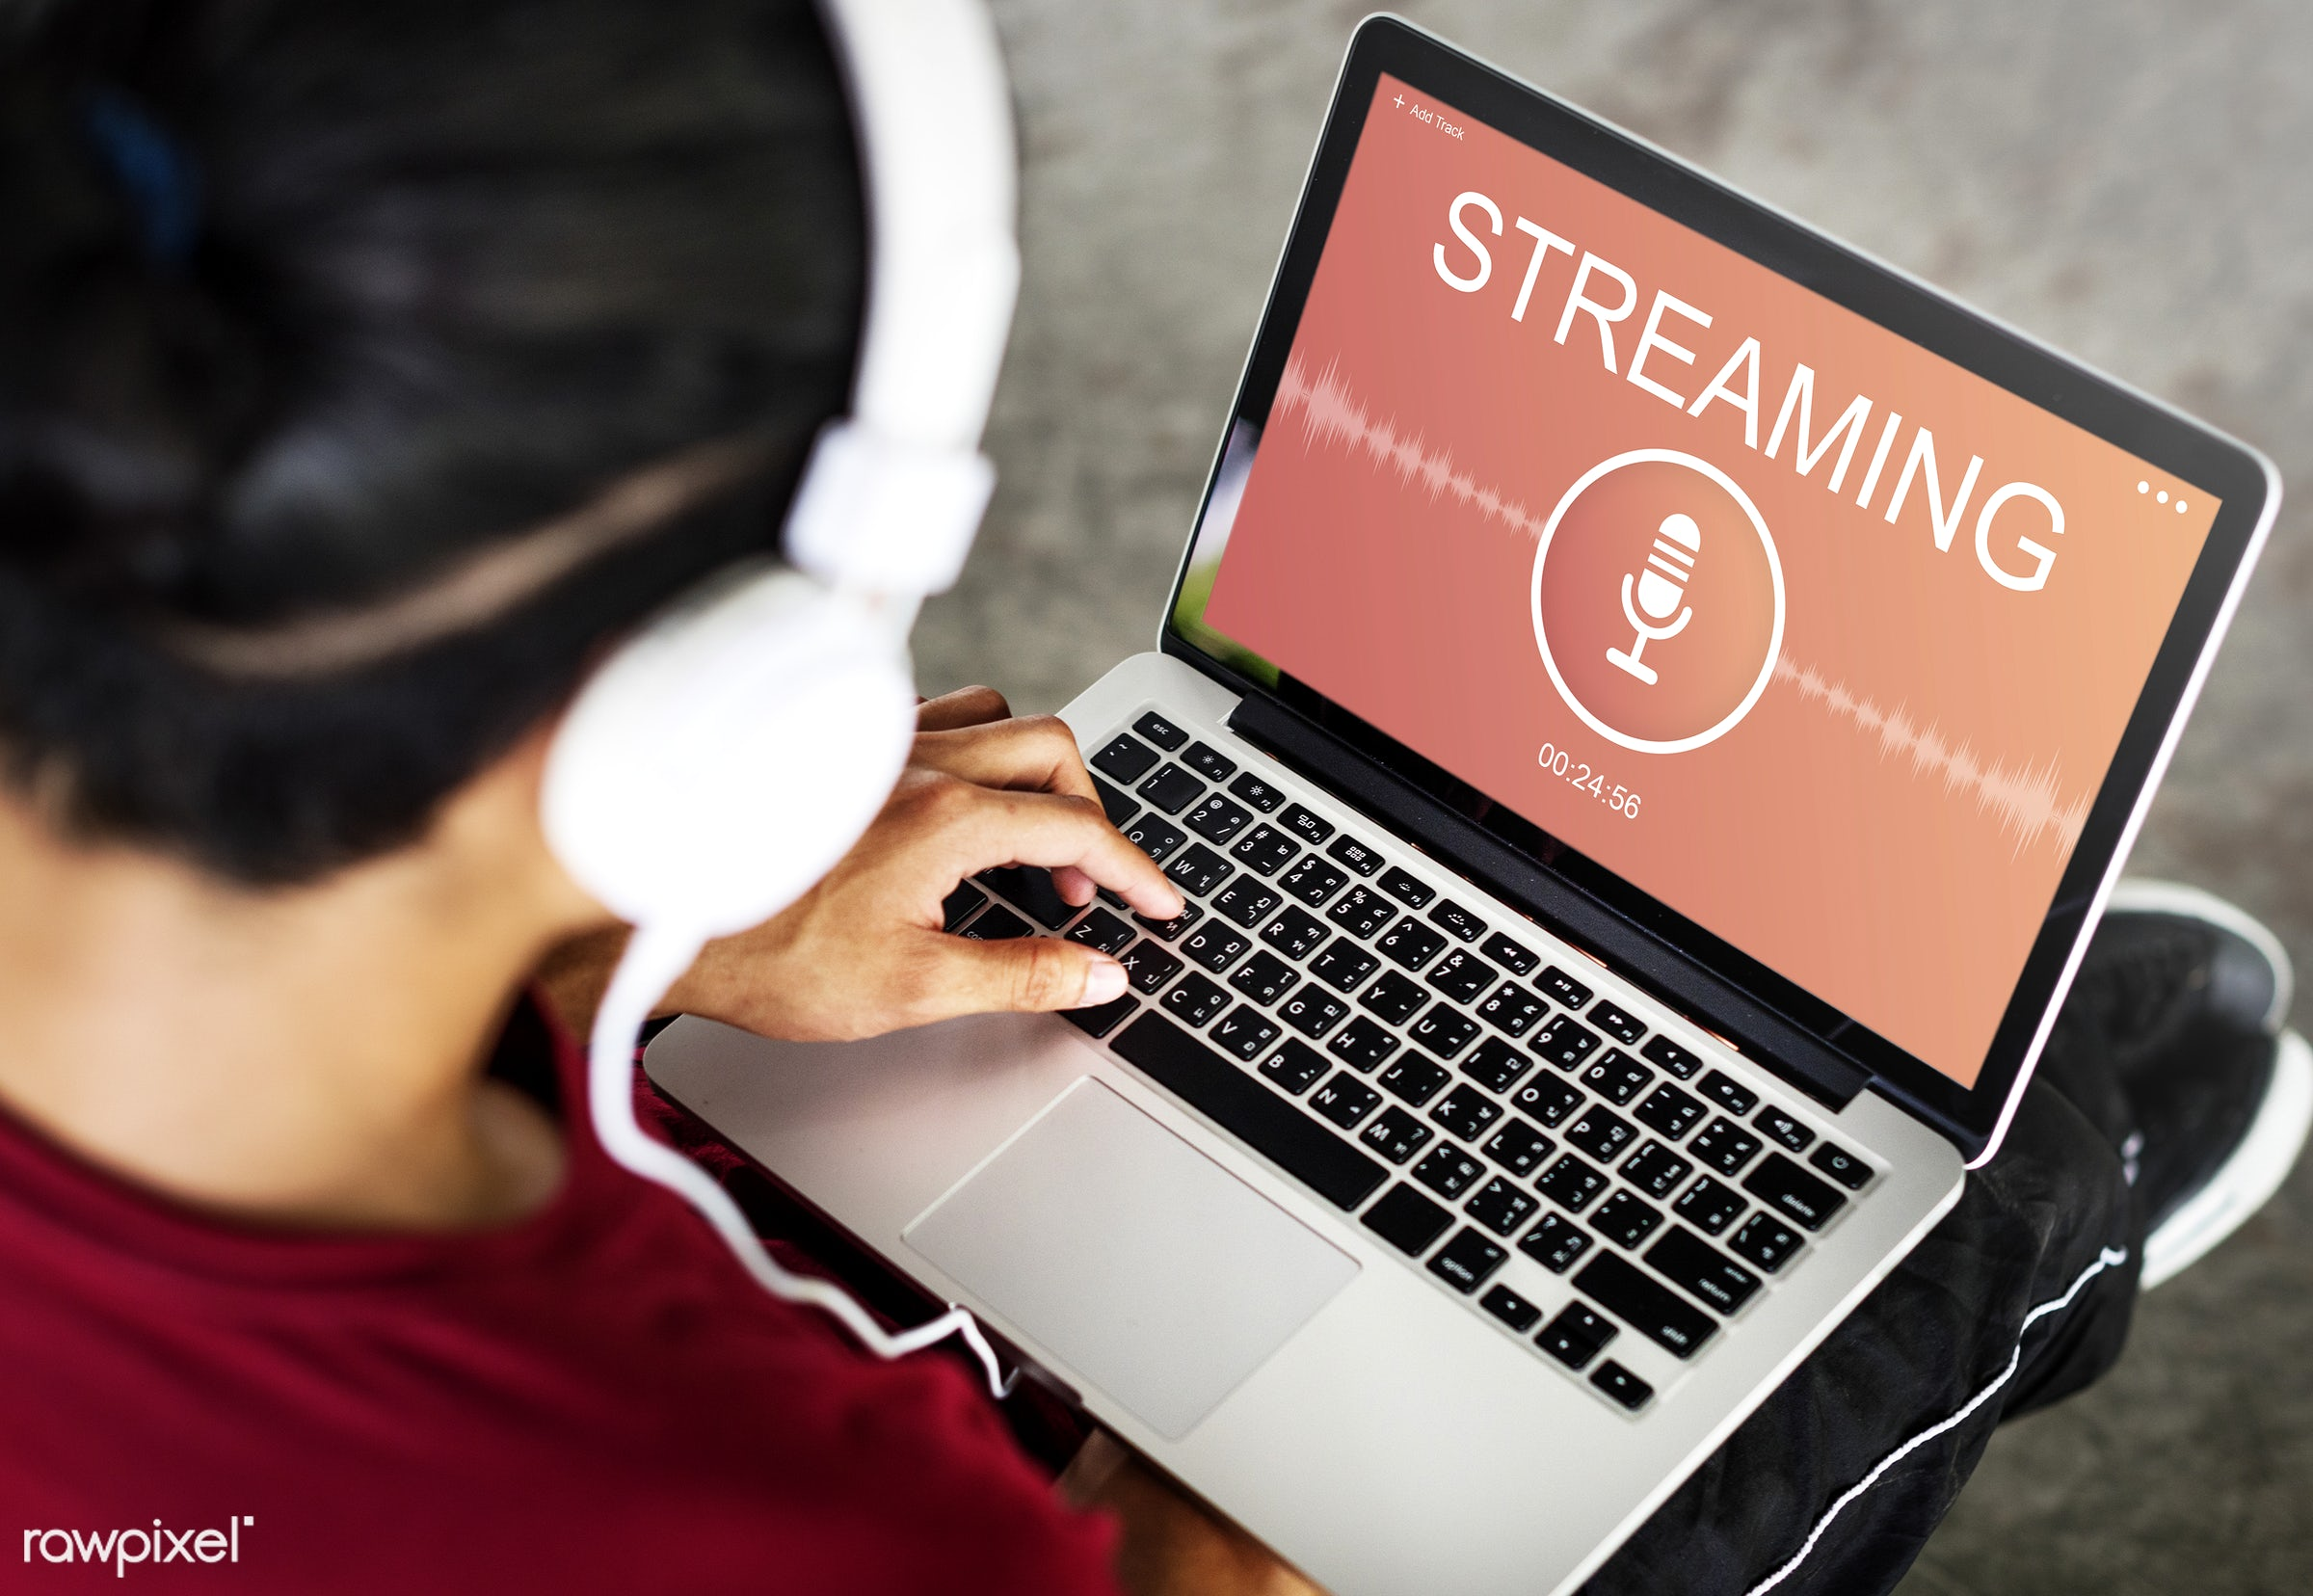 Online audio streaming - browse, browsing, connect, connection, headphones, laptop, lifestyle, listen, listening, media,...